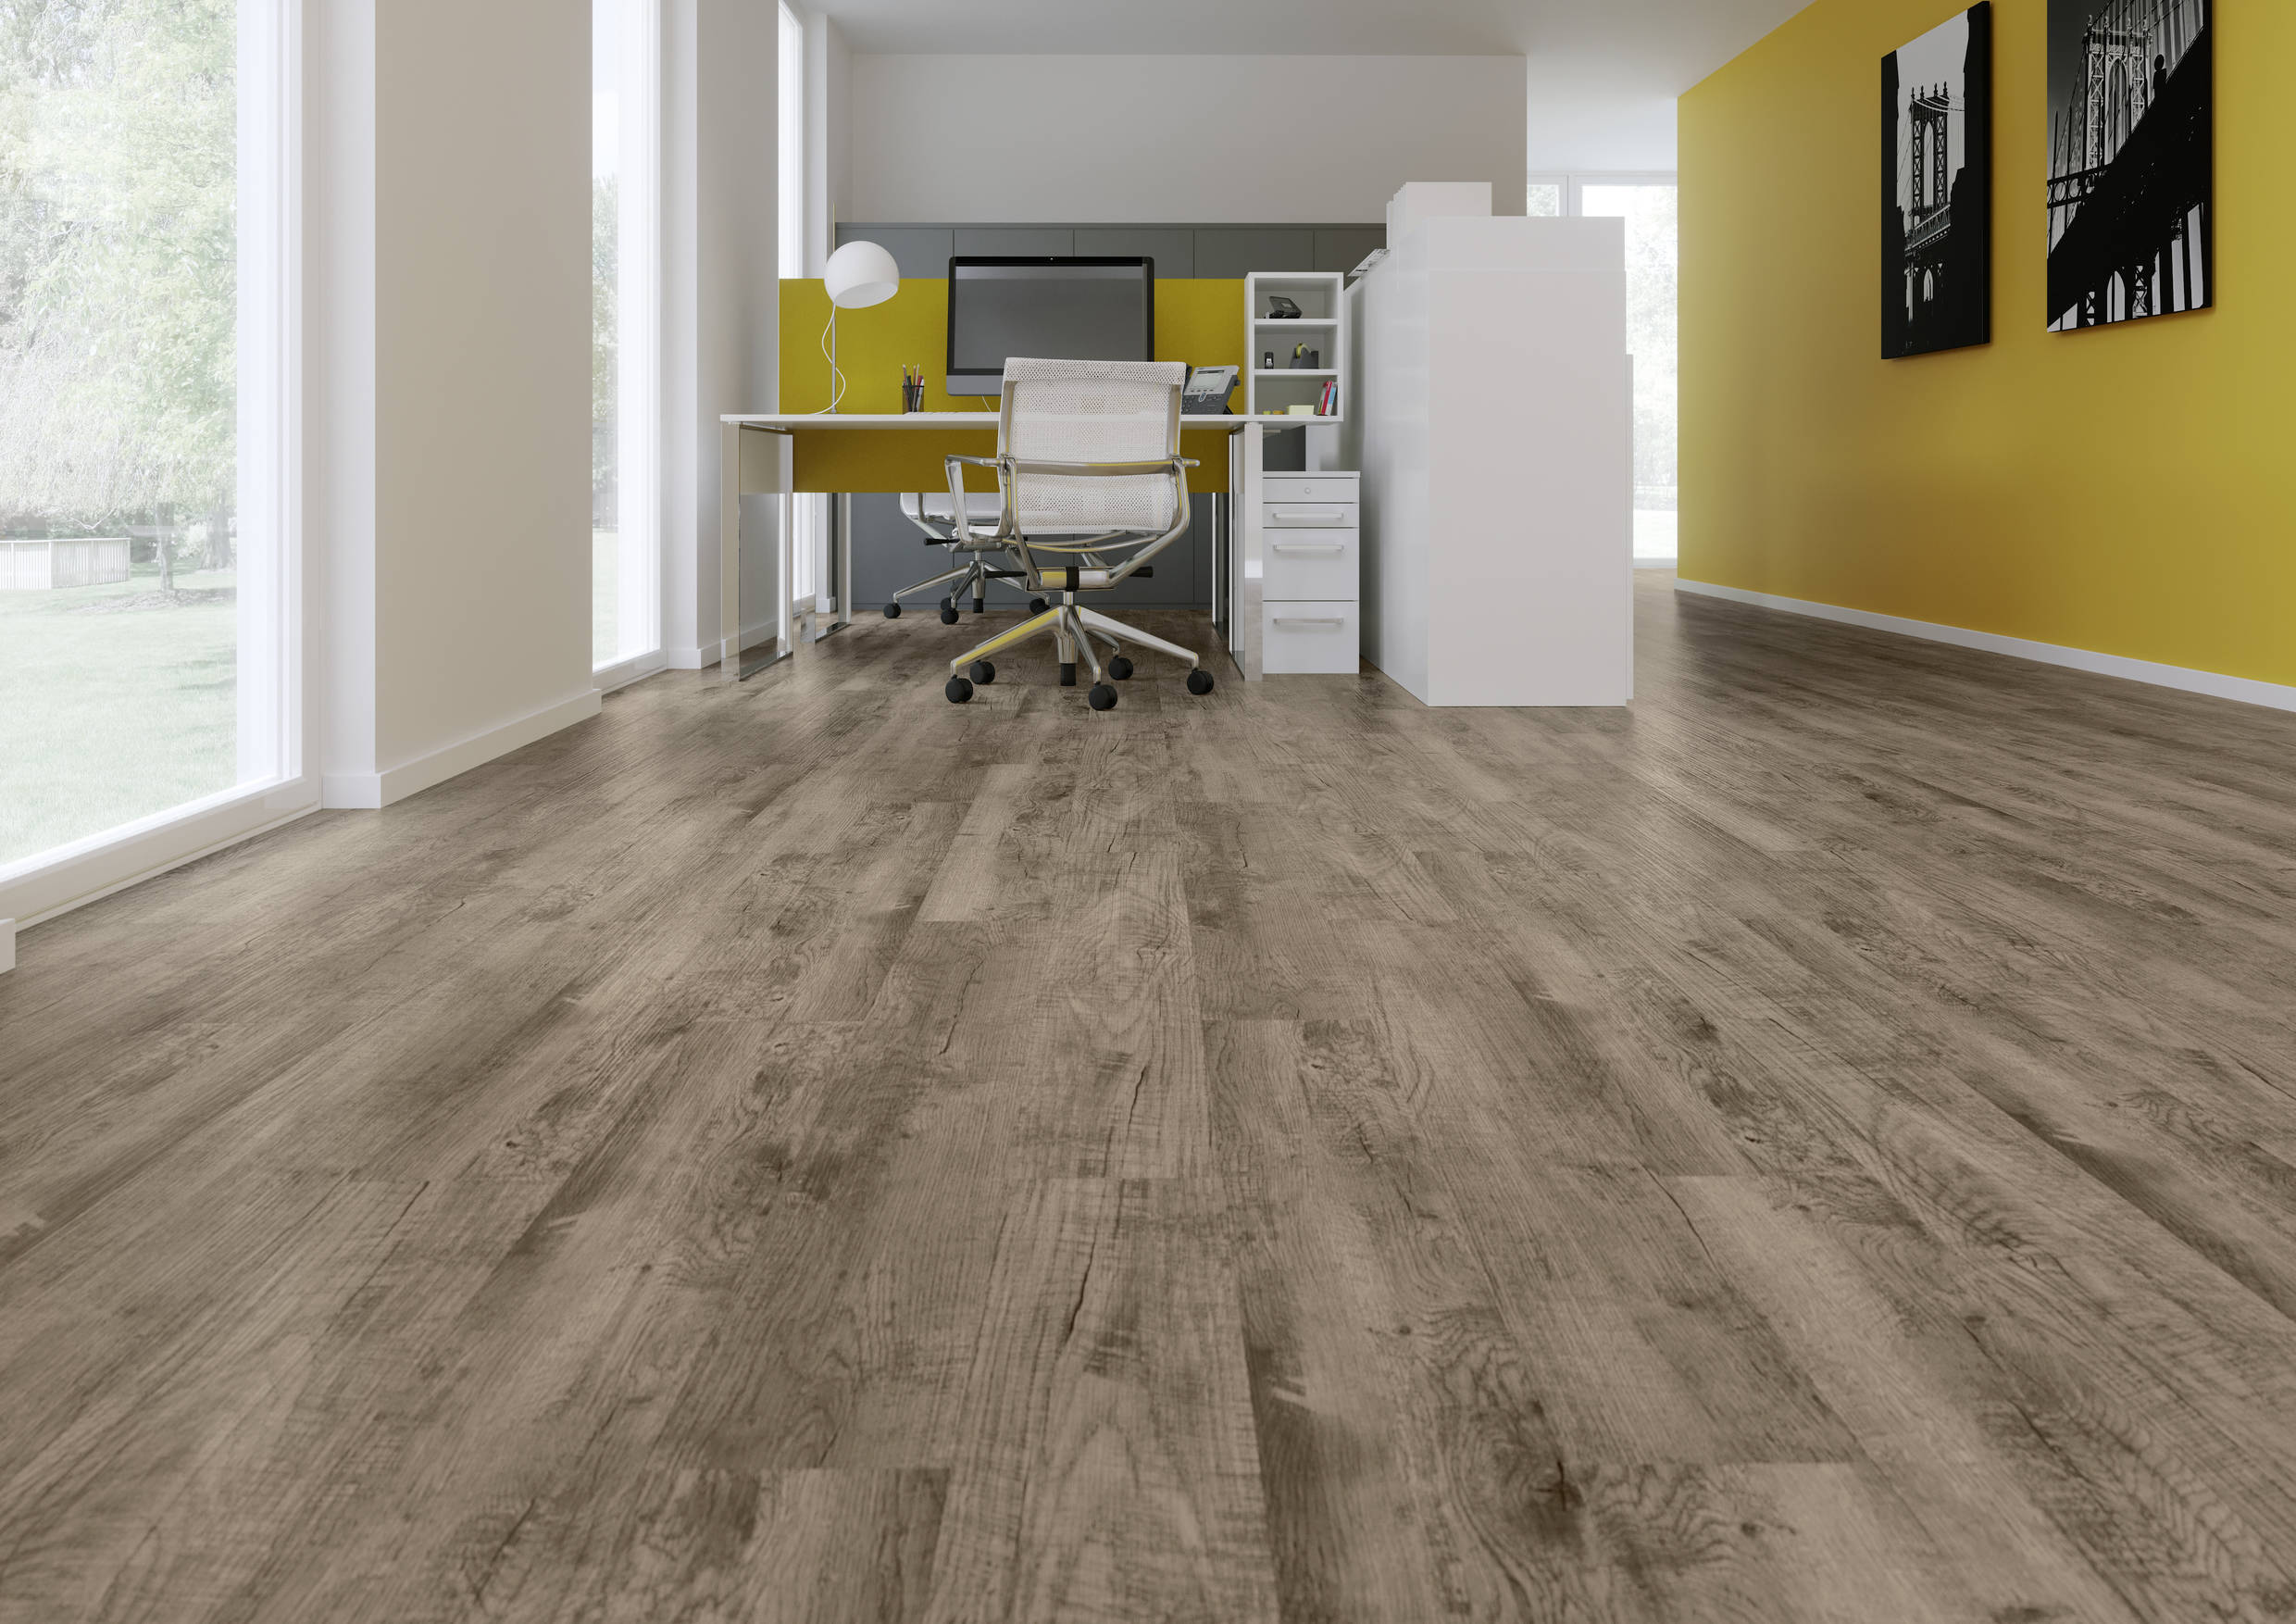 https://www.nmi-homedesign.at/wp/wp-content/uploads/2019/09/md_DES_Deluxe_555_5202_Brown_Driftwood_V4_rau-1.jpg